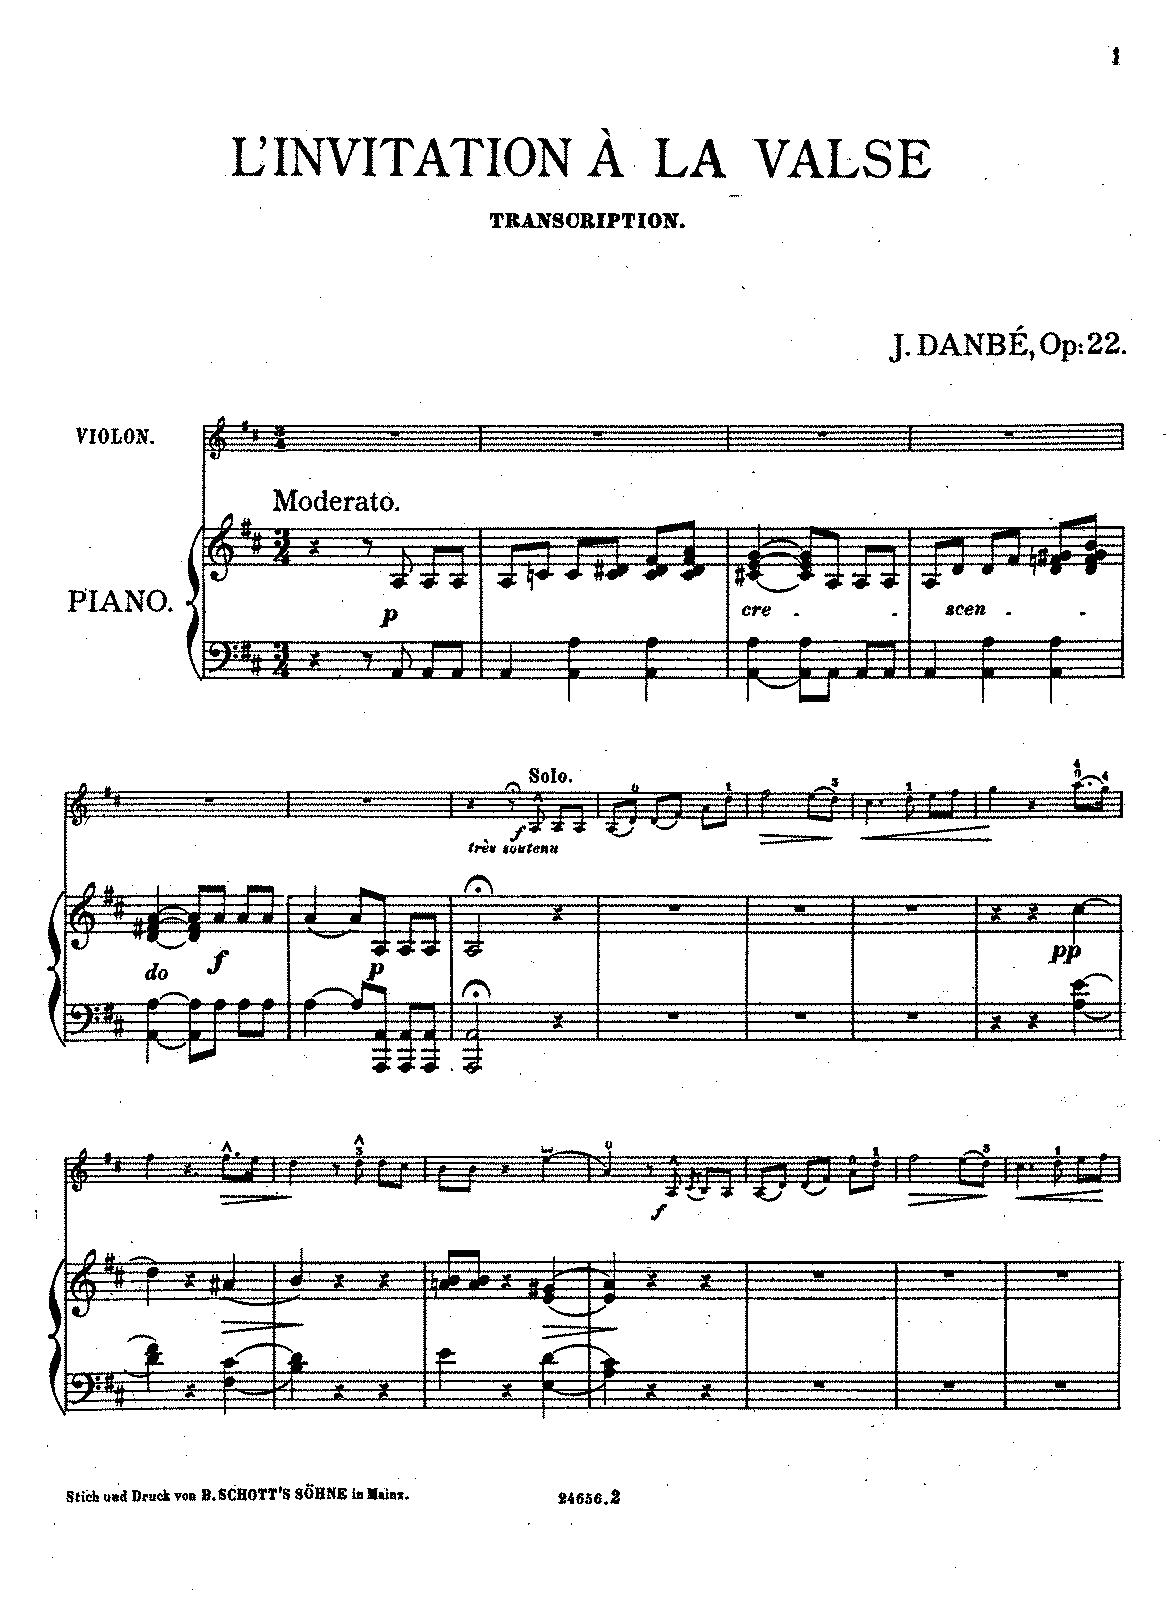 PMLP05759-Weber - Invitation to the Walse Op22 (Danbe) violin piano.pdf